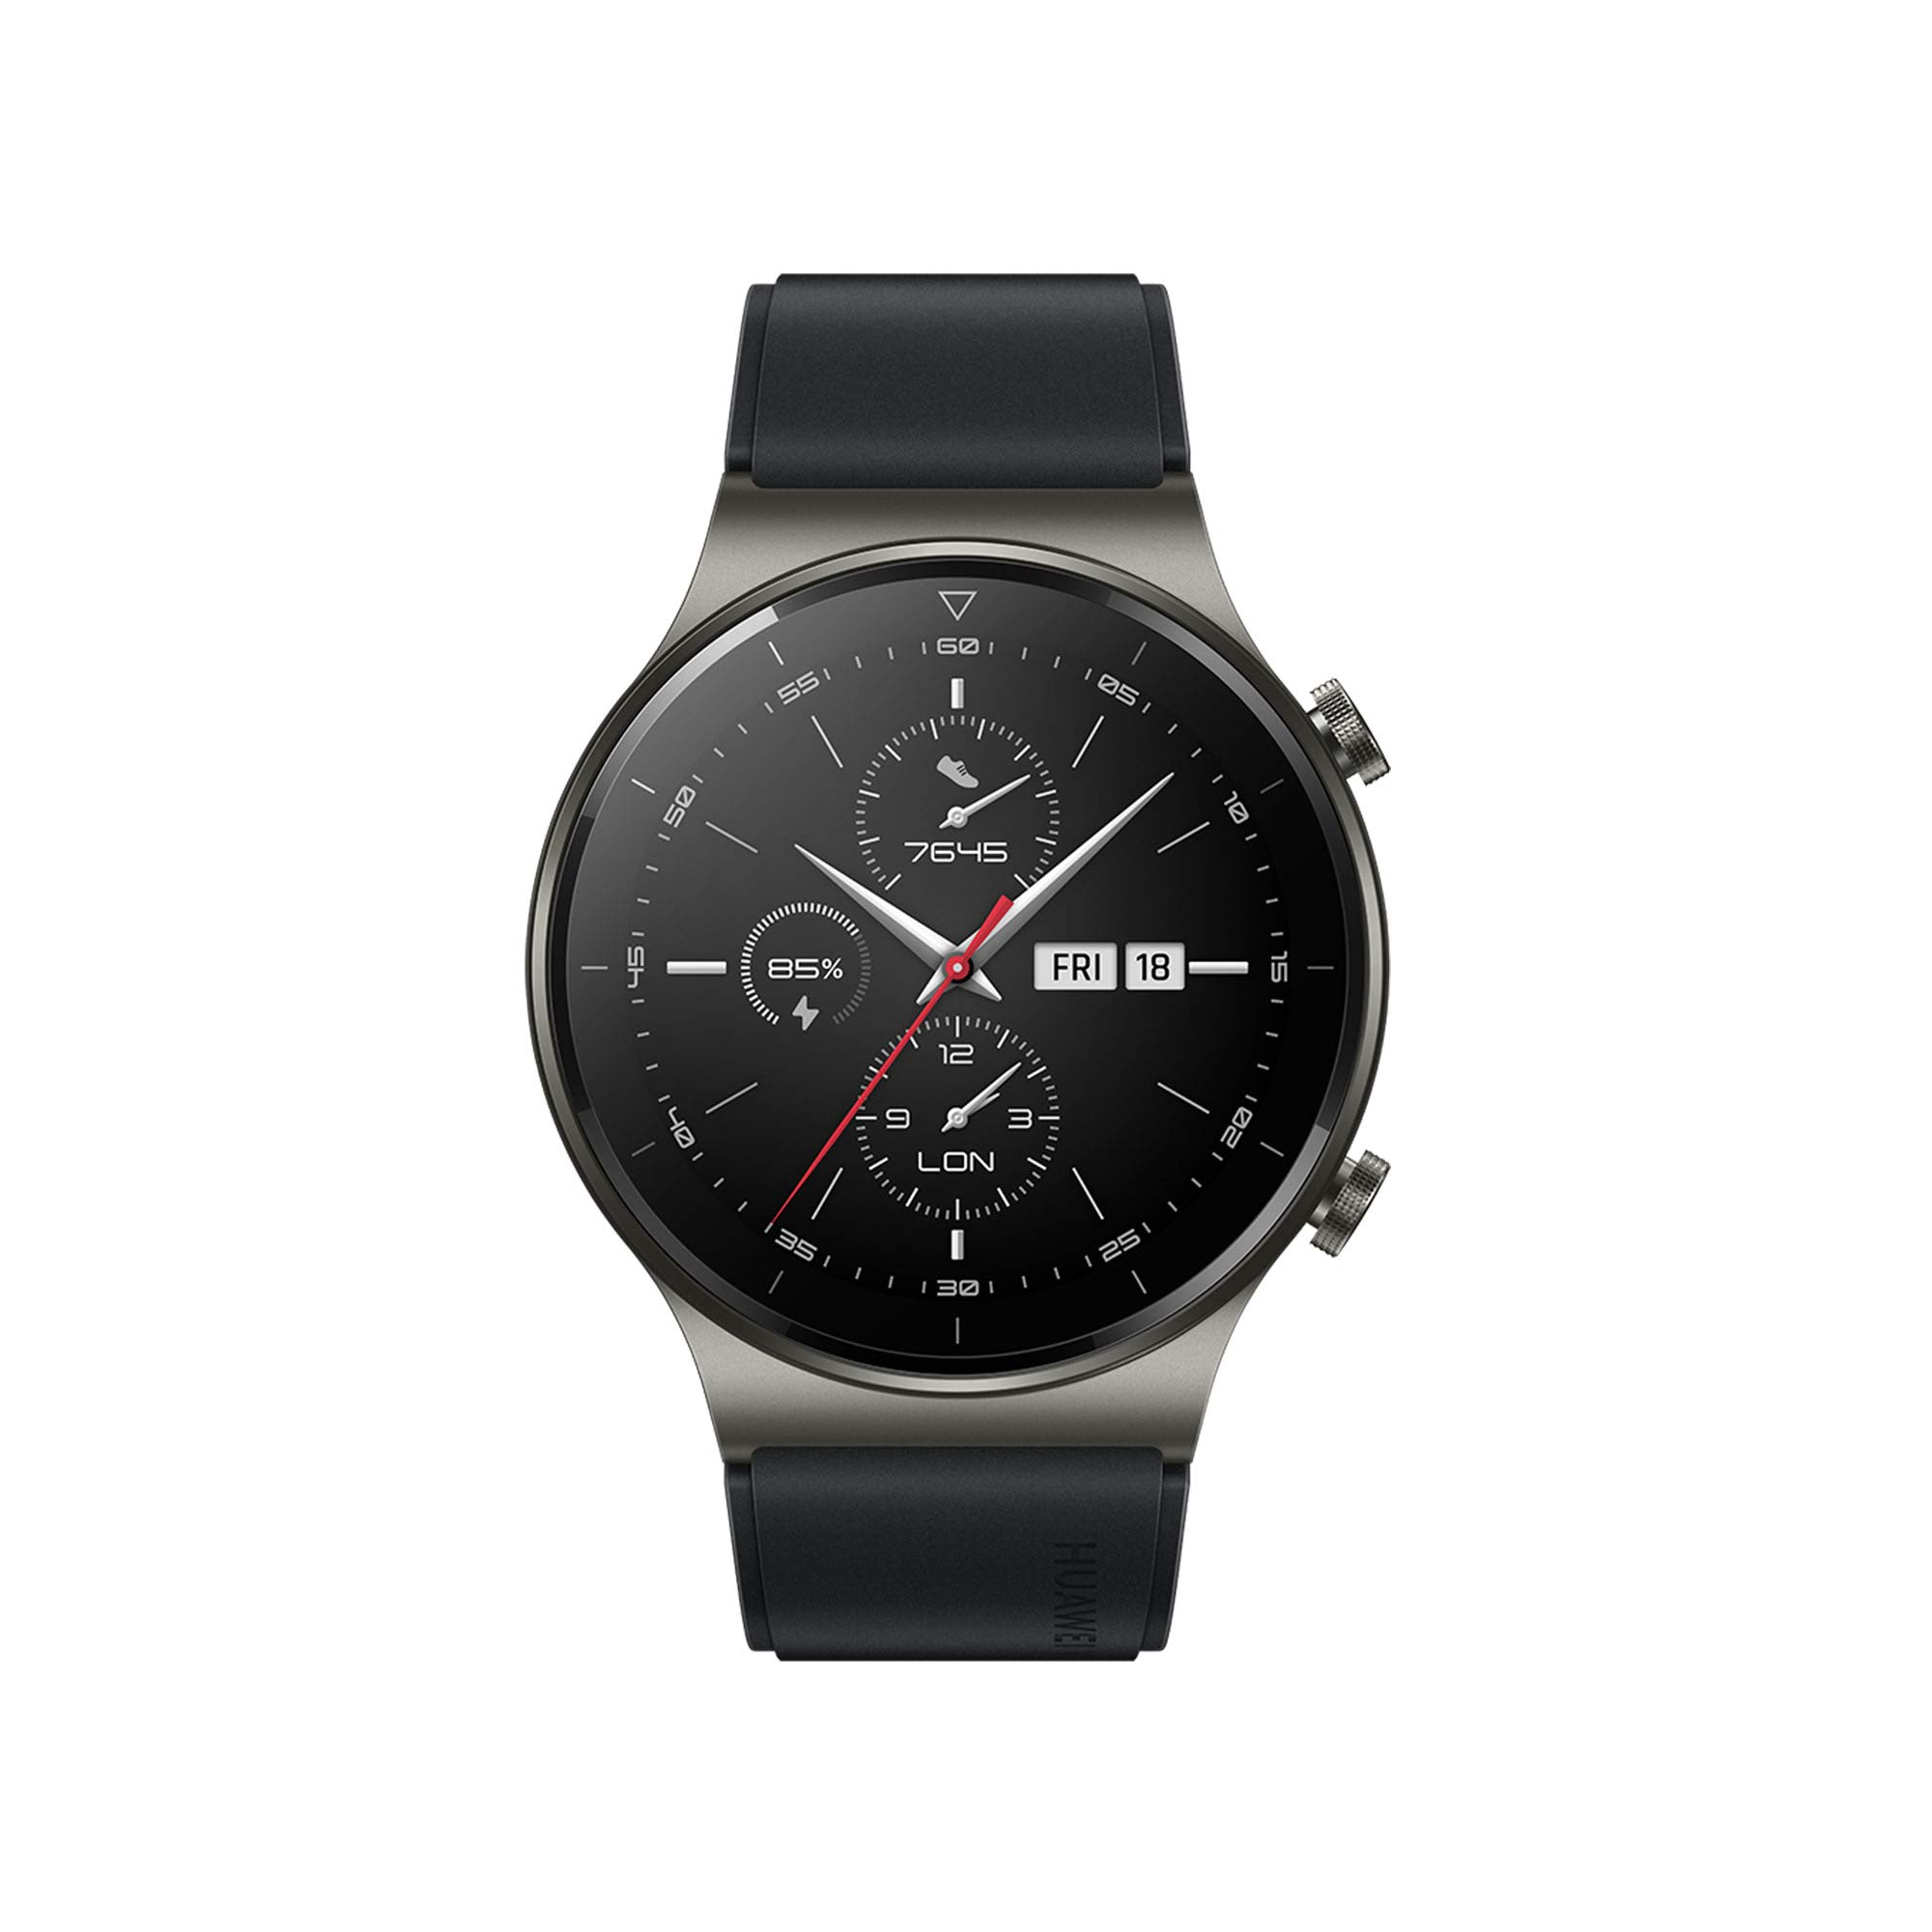 HUAWEI Watch GT 2 Pro Smart Watch 1.39 inch AMOLED Touchscreen SmartWatch, Sport GPS 14 Days Battery Life, Heart Rate Tracker, Blood Oxygen Monitor Waterproof Bluetooth Calls for Android, Black